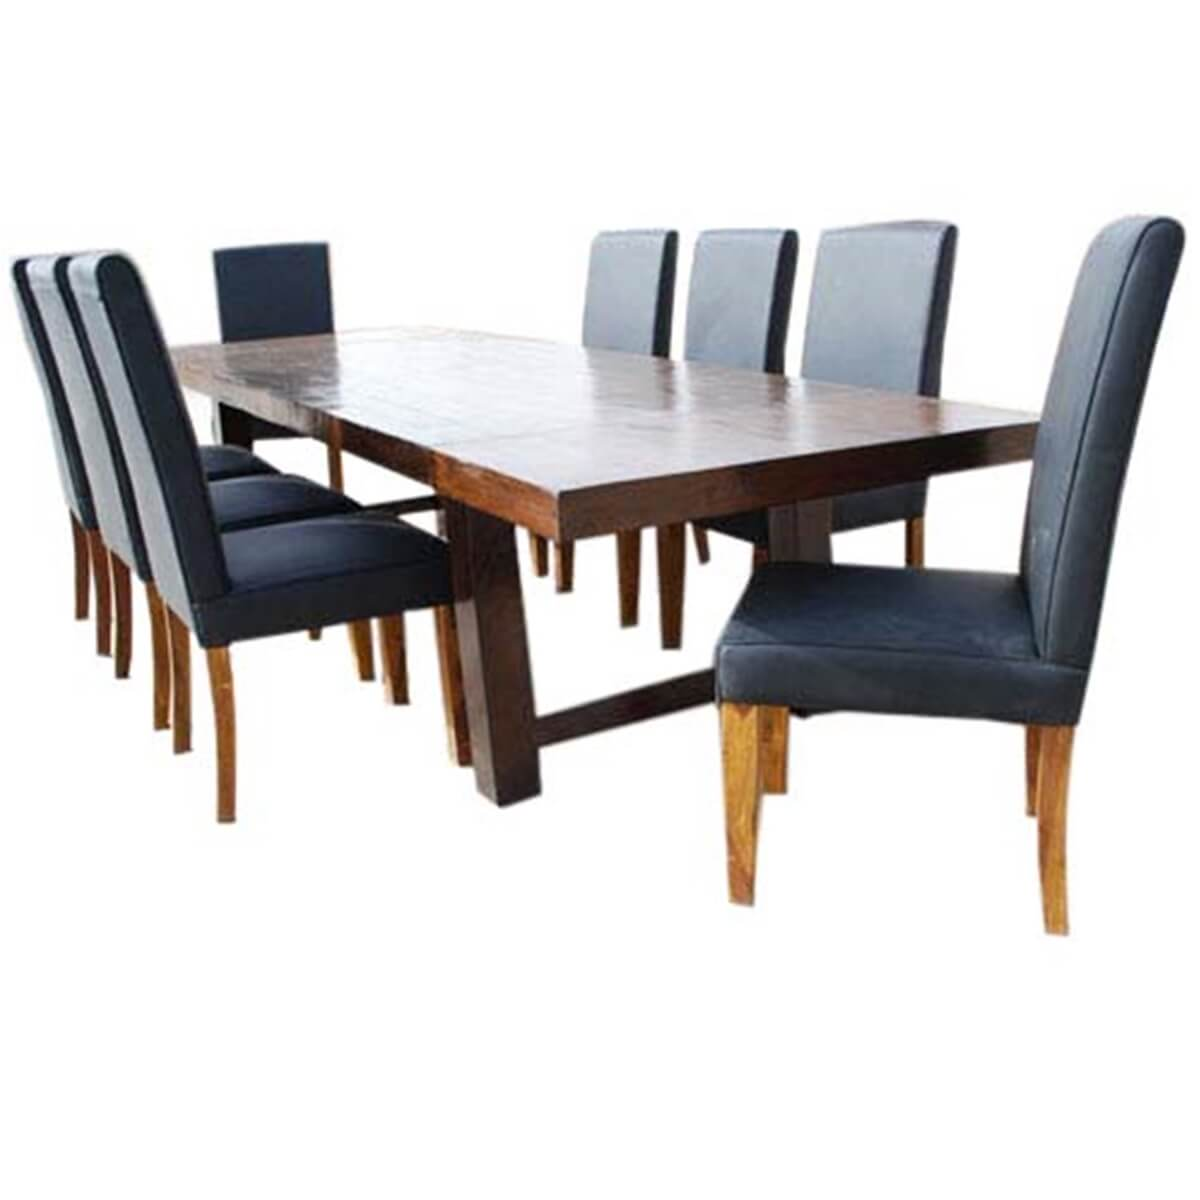 Matterhorn 13 pc transitional dining table and chair set for 12 people dining table